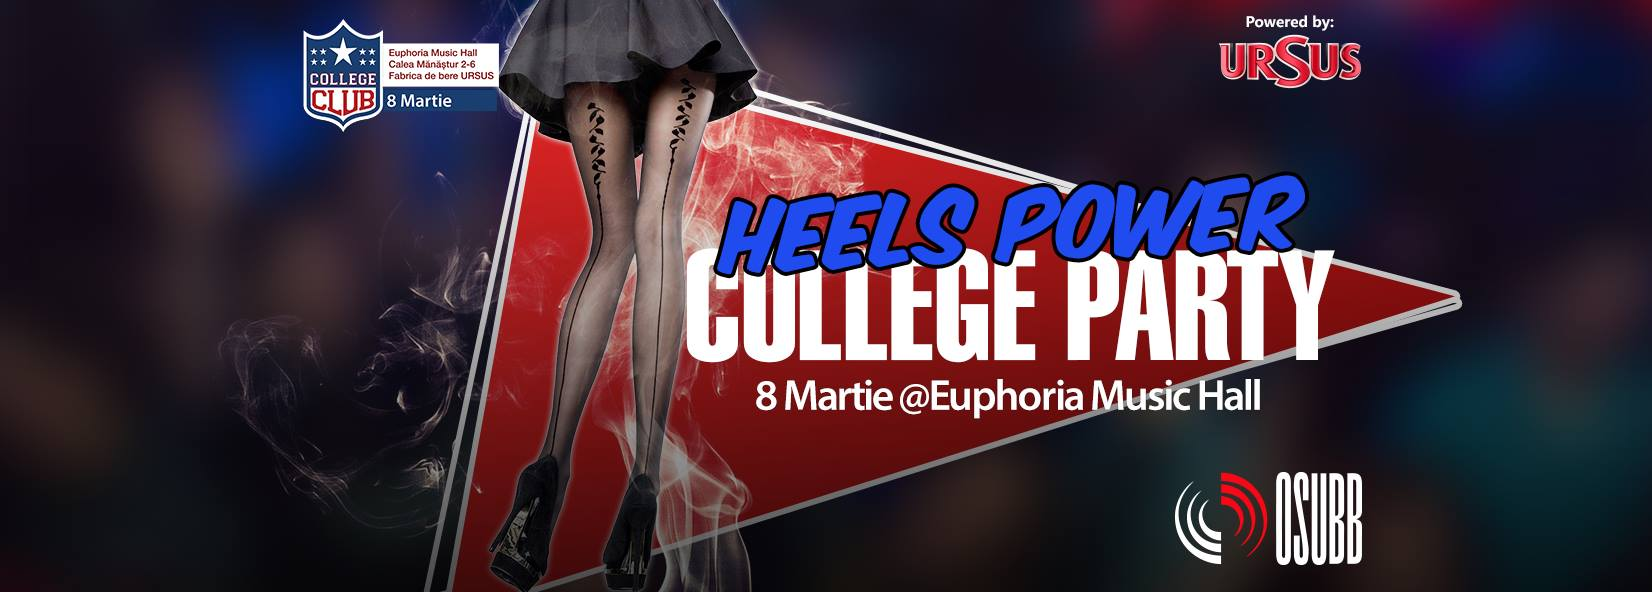 College Party – Heels Power @ Euphoria Music Hall